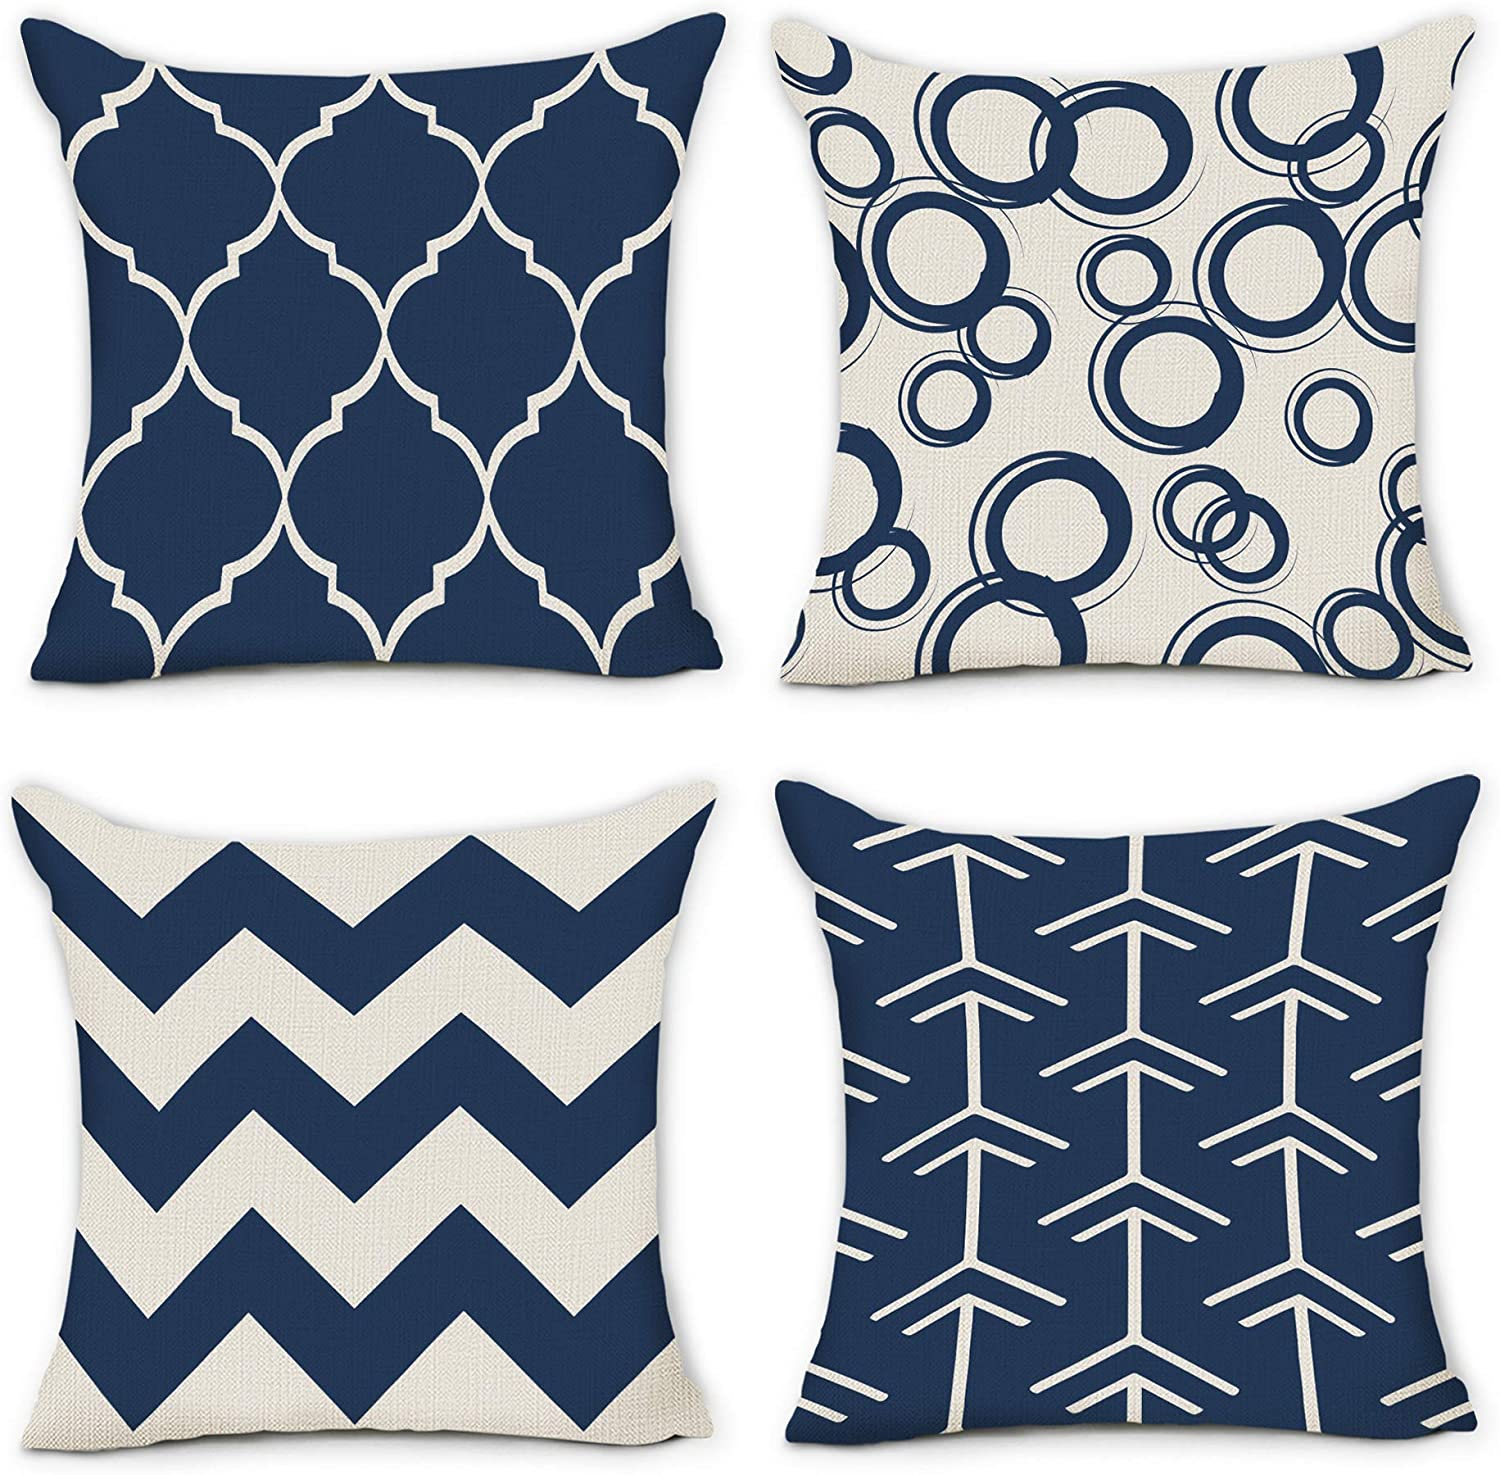 pinata blue pillow covers 18x18 set of 4 beige not white outdoor decorative throw pillows cases bright royal navy blue geometric farmhouse summer